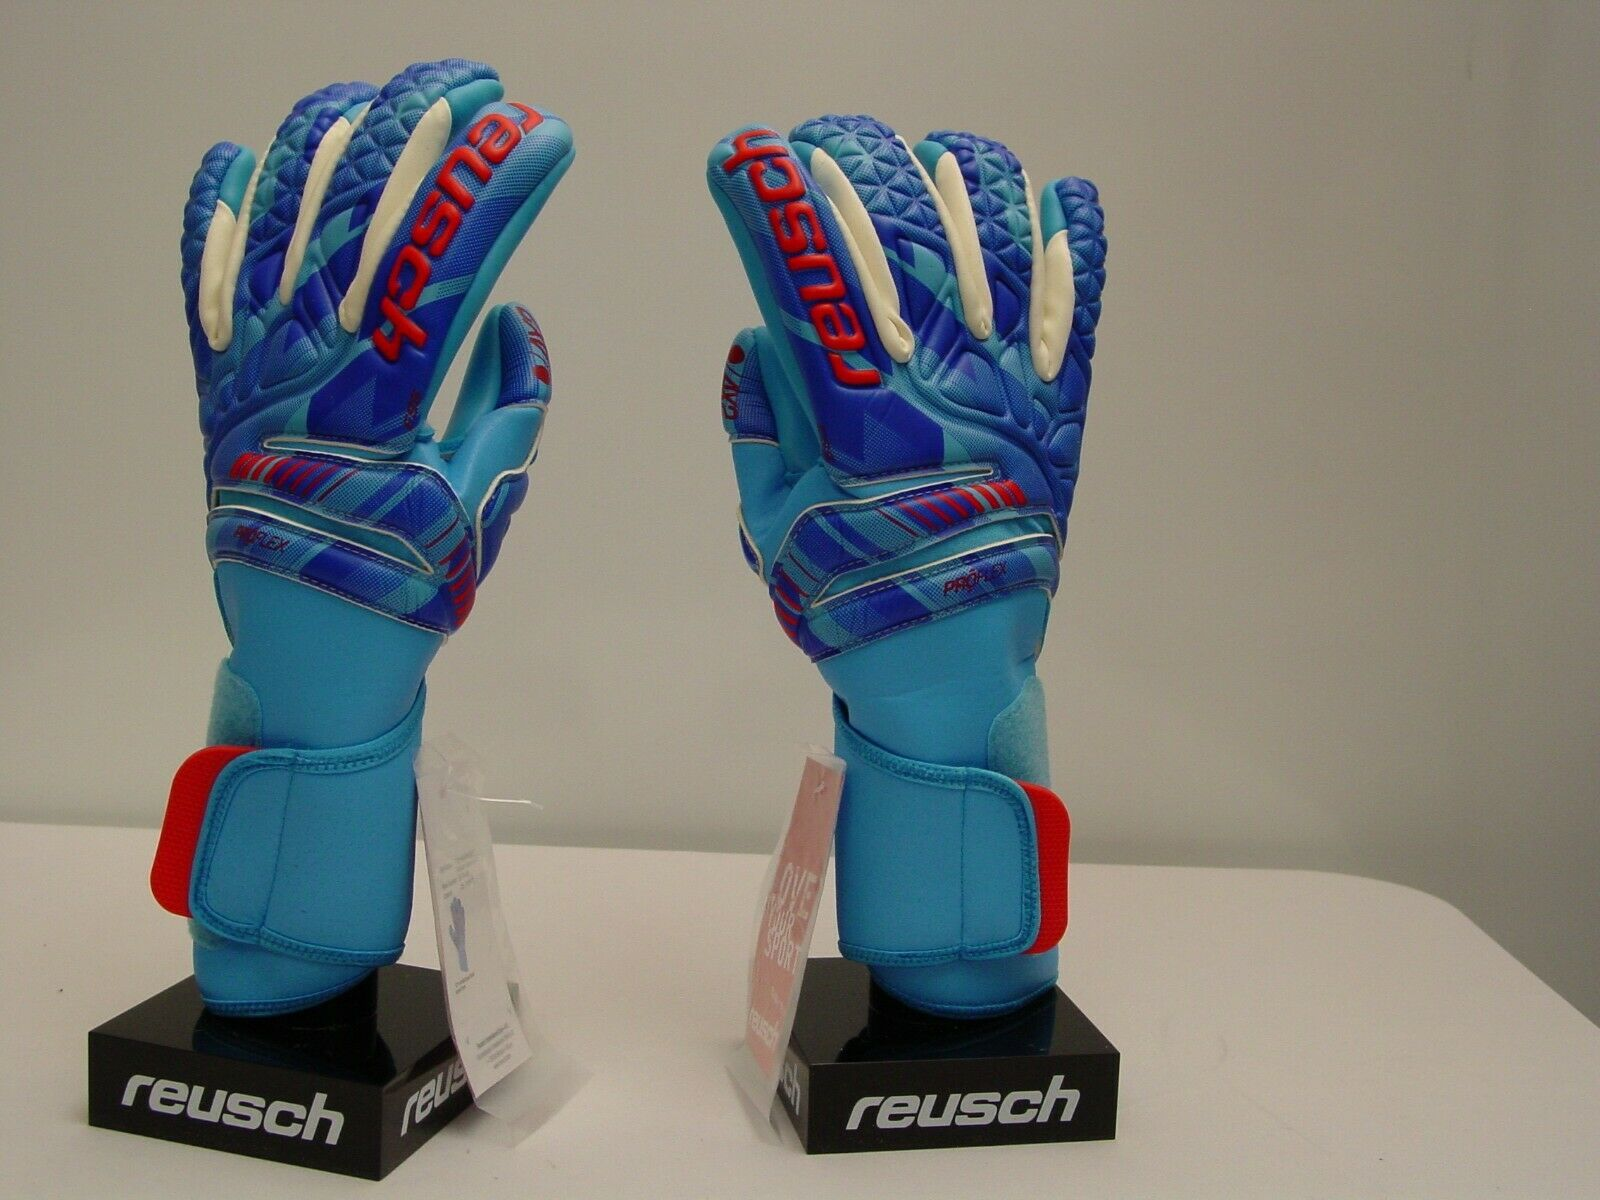 Reusch football gardien de but Gants Fit Control Pro AX2 évolution négative Cut 3970459 S